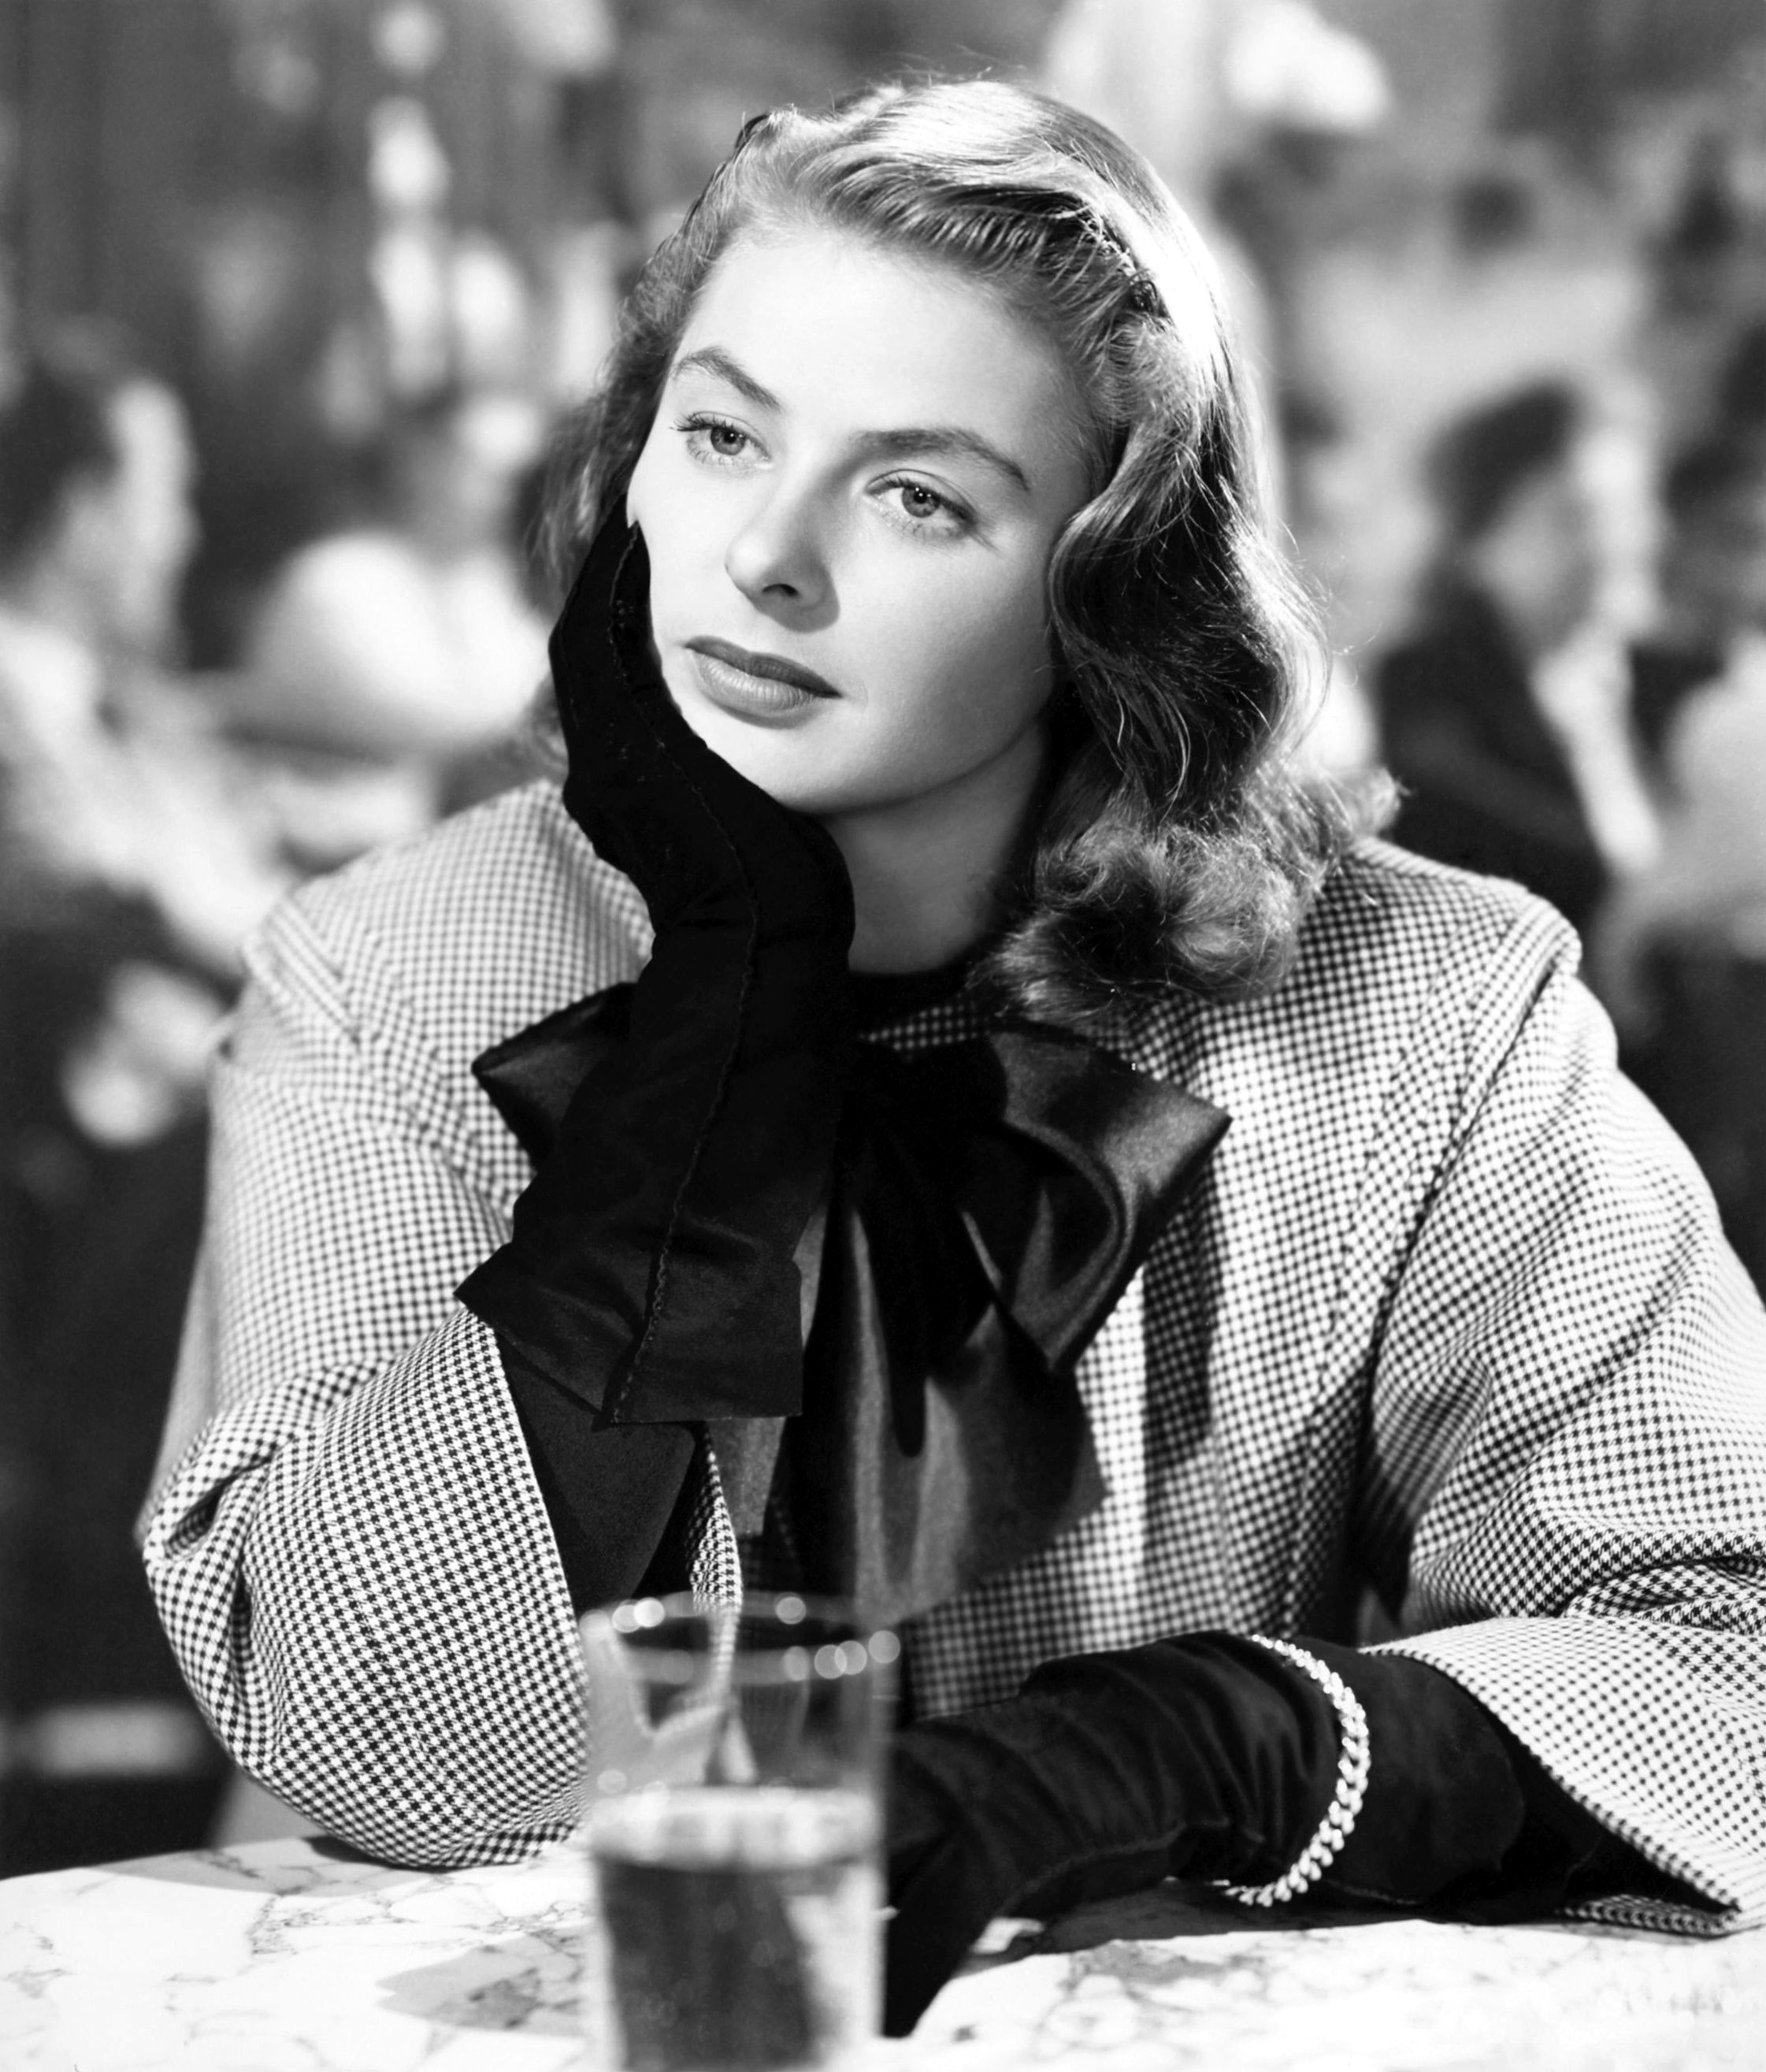 ingrid bergman biographyingrid bergman роза, ingrid bergman in her own words, ingrid bergman rose, ingrid bergman wiki, ingrid bergman oscar dress, ingrid bergman quotes, ingrid bergman biography, ingrid bergman documentary, ingrid bergman pictures, ingrid bergman gif, ingrid bergman imdb, ingrid bergman old, ingrid bergman kitap, ingrid bergman casablanca, ingrid bergman ingmar bergman, ingrid bergman alfred hitchcock, ingrid bergman cactus flower, ingrid bergman interview, ingrid bergman bulgari, ingrid bergman last photo